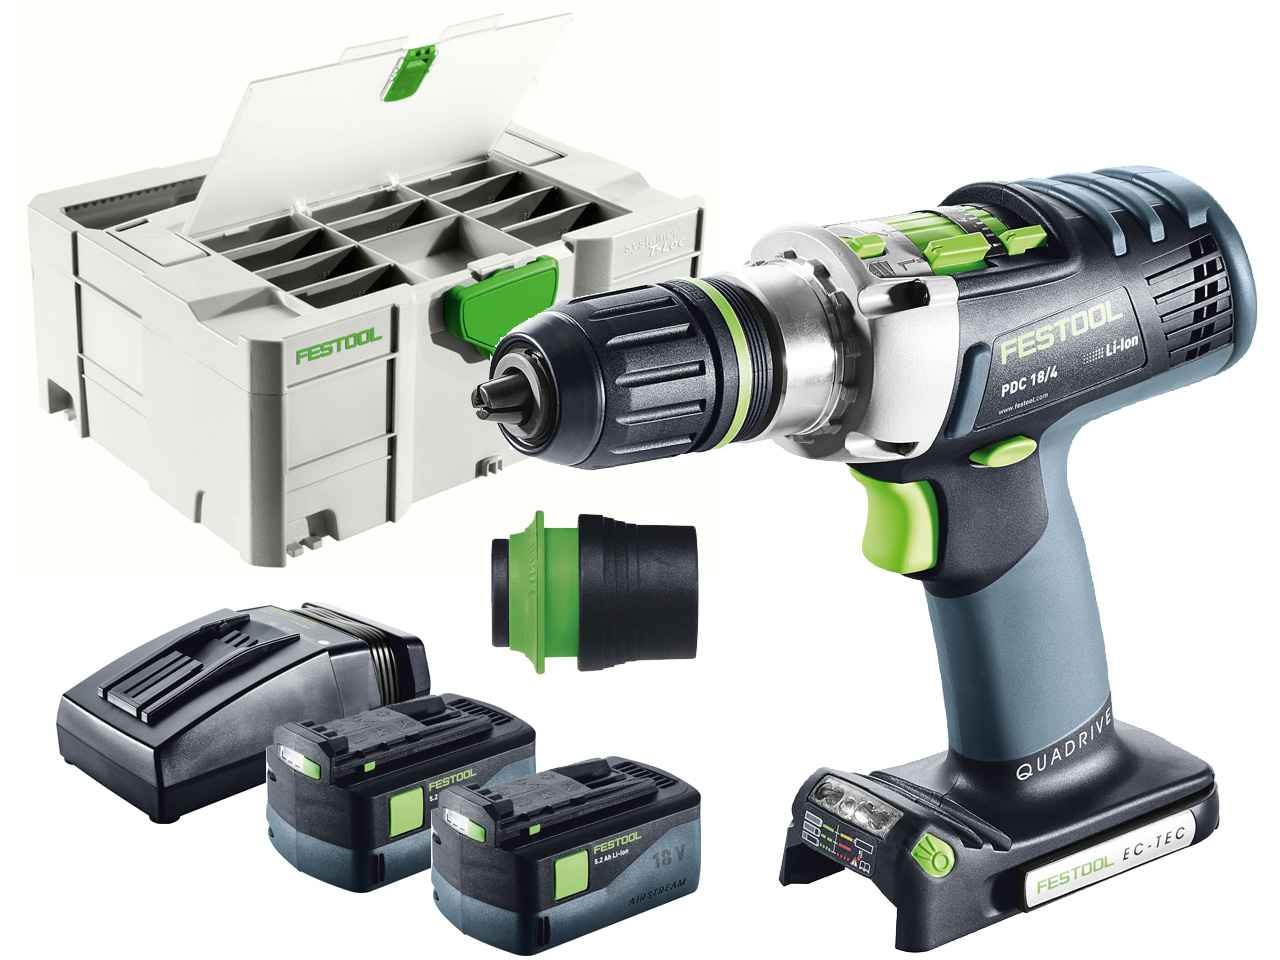 festool 574705 pdc 18 4 li 5 2 plus 18v percussion drill systainer 2 df. Black Bedroom Furniture Sets. Home Design Ideas